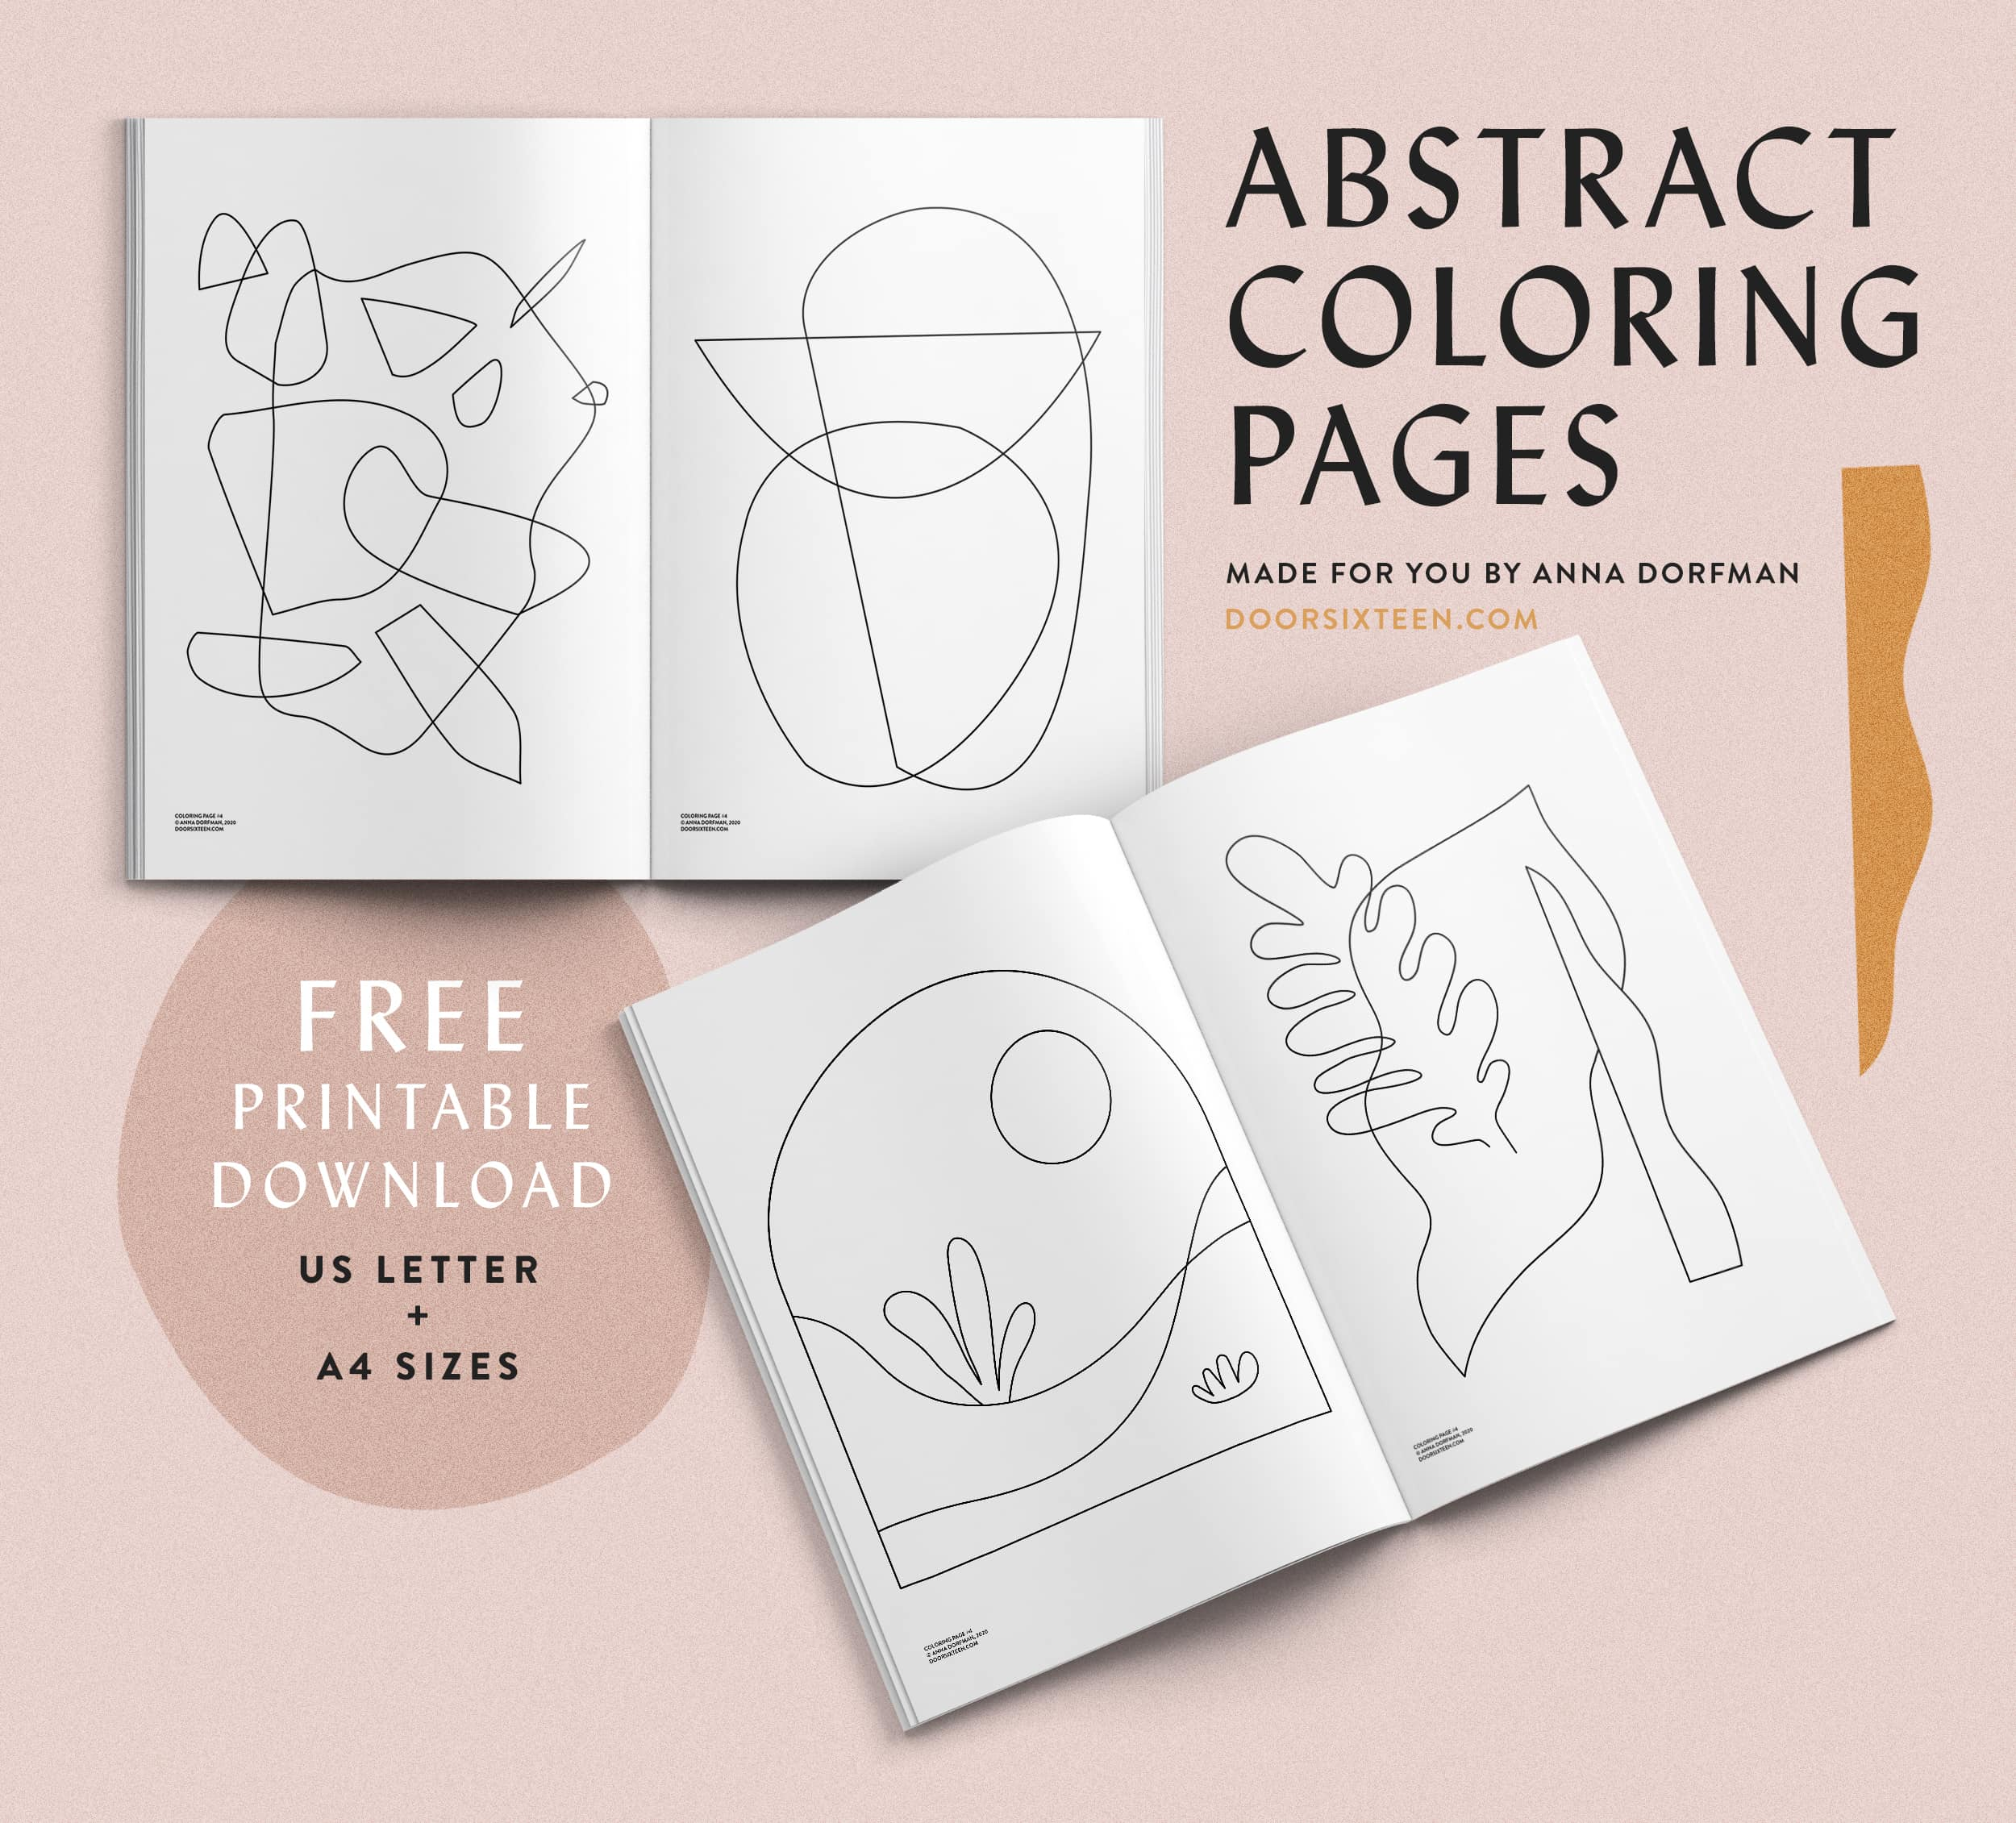 Abstract coloring pages download - doorsixteen.com